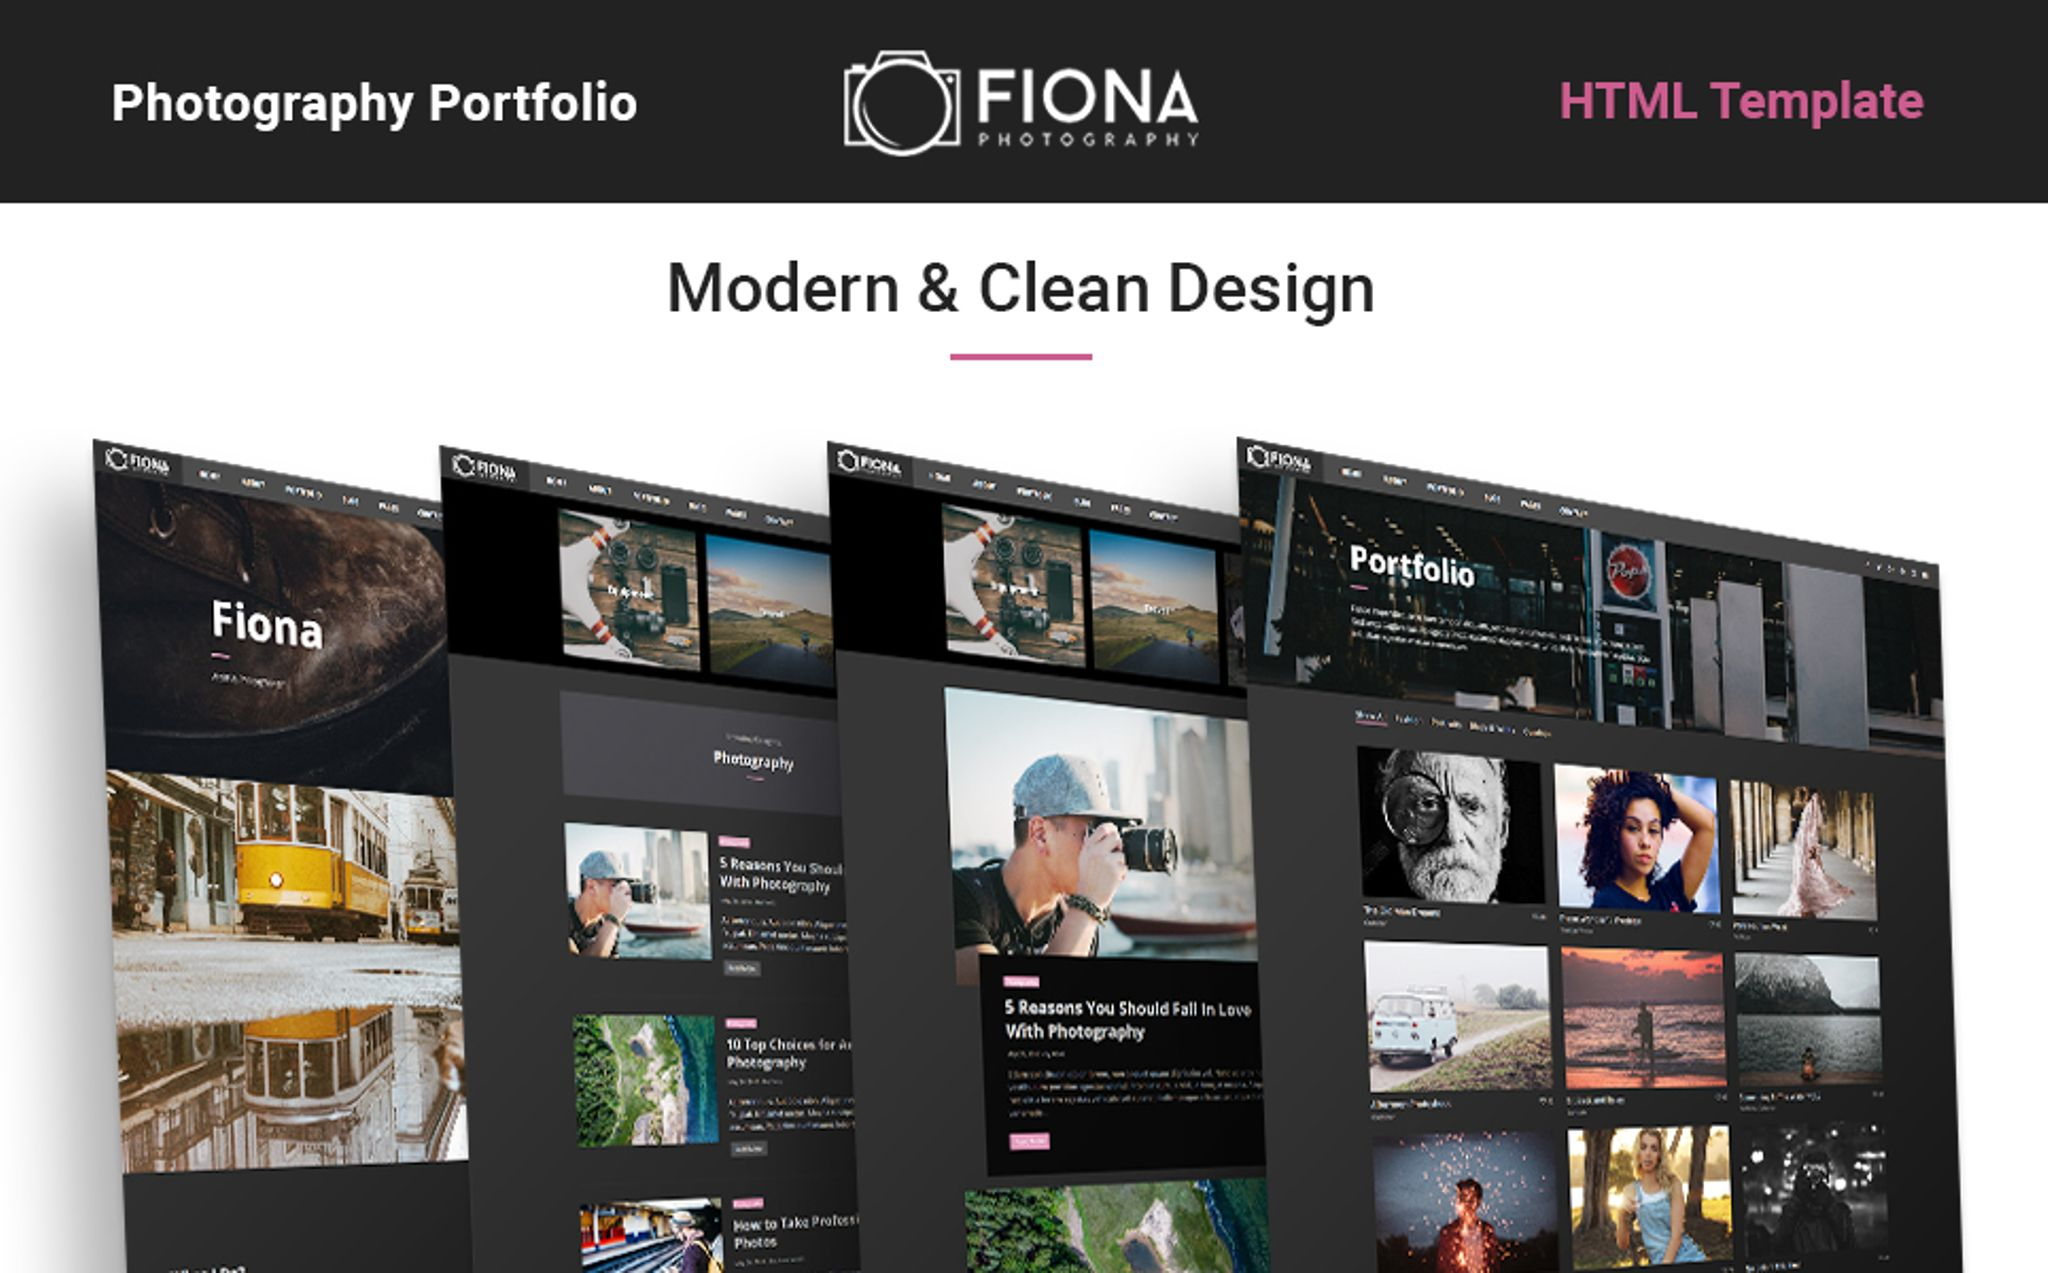 Fiona Photo Gallery Portfolio Website Template 65436